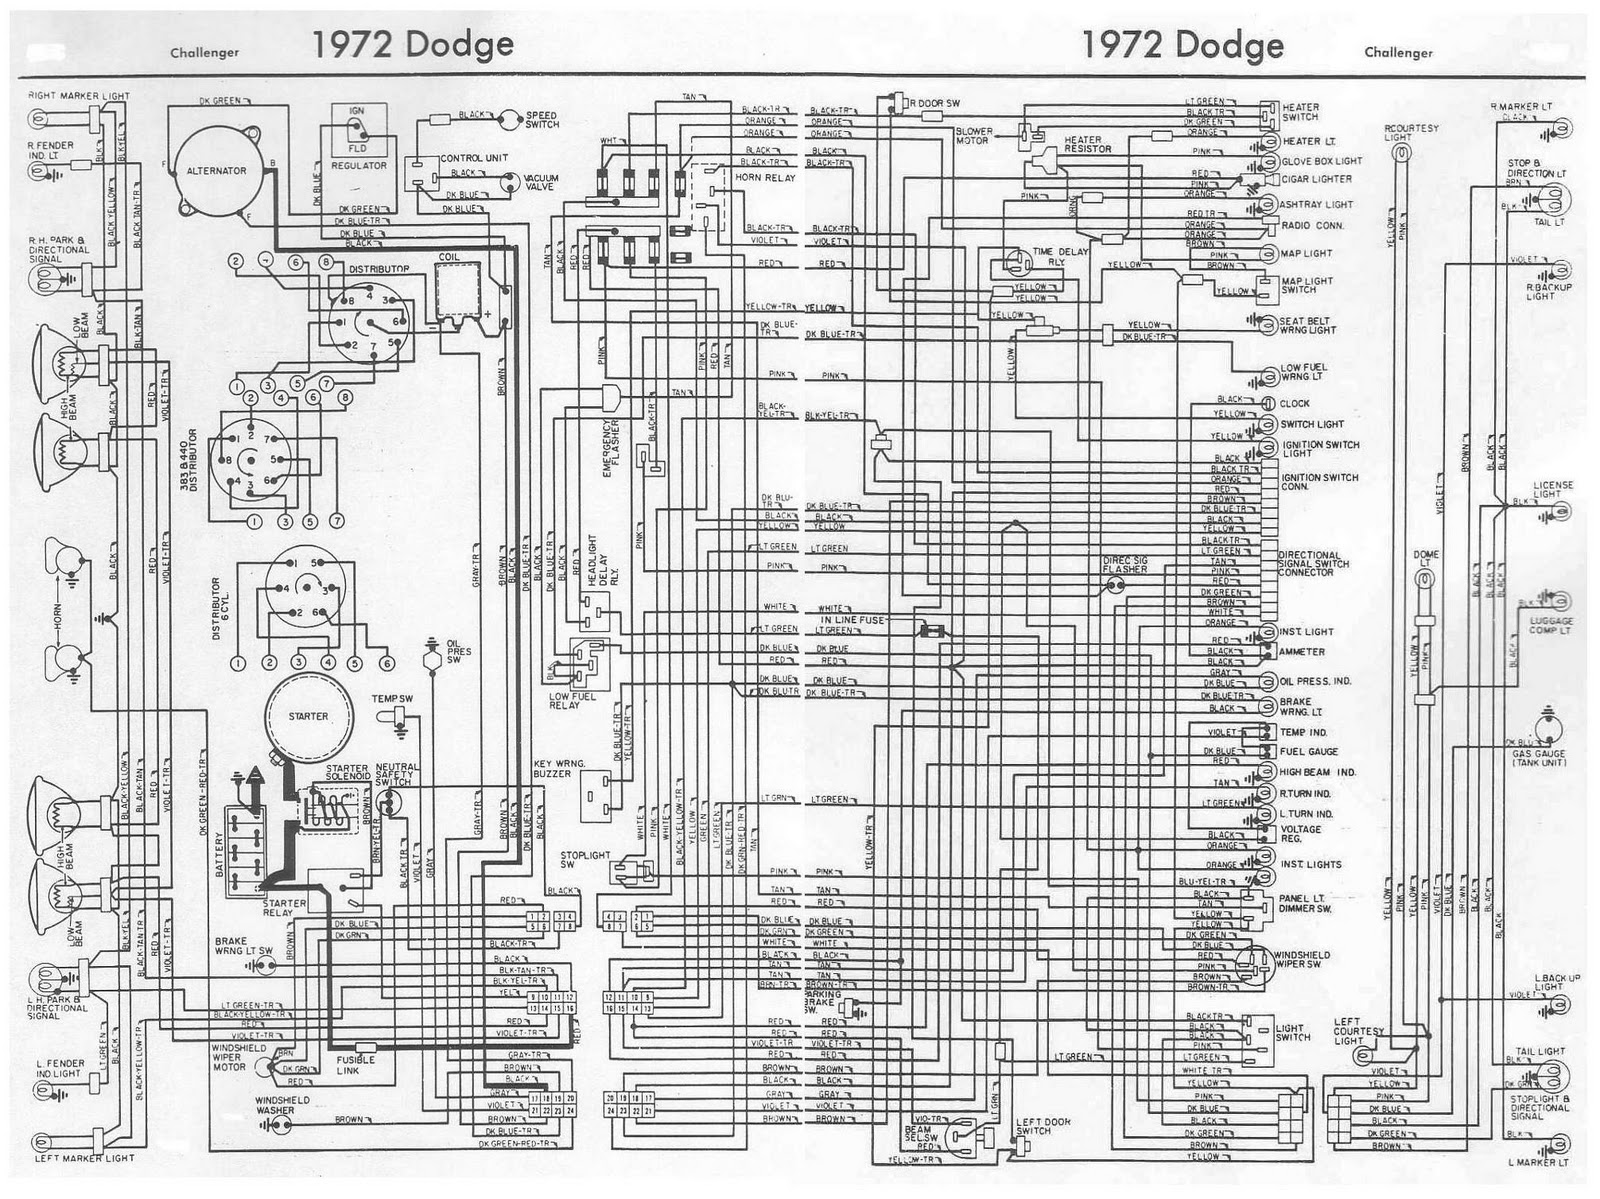 Panel Wiring Diagram In Addition Ford Tractor Ignition Switch Wiring